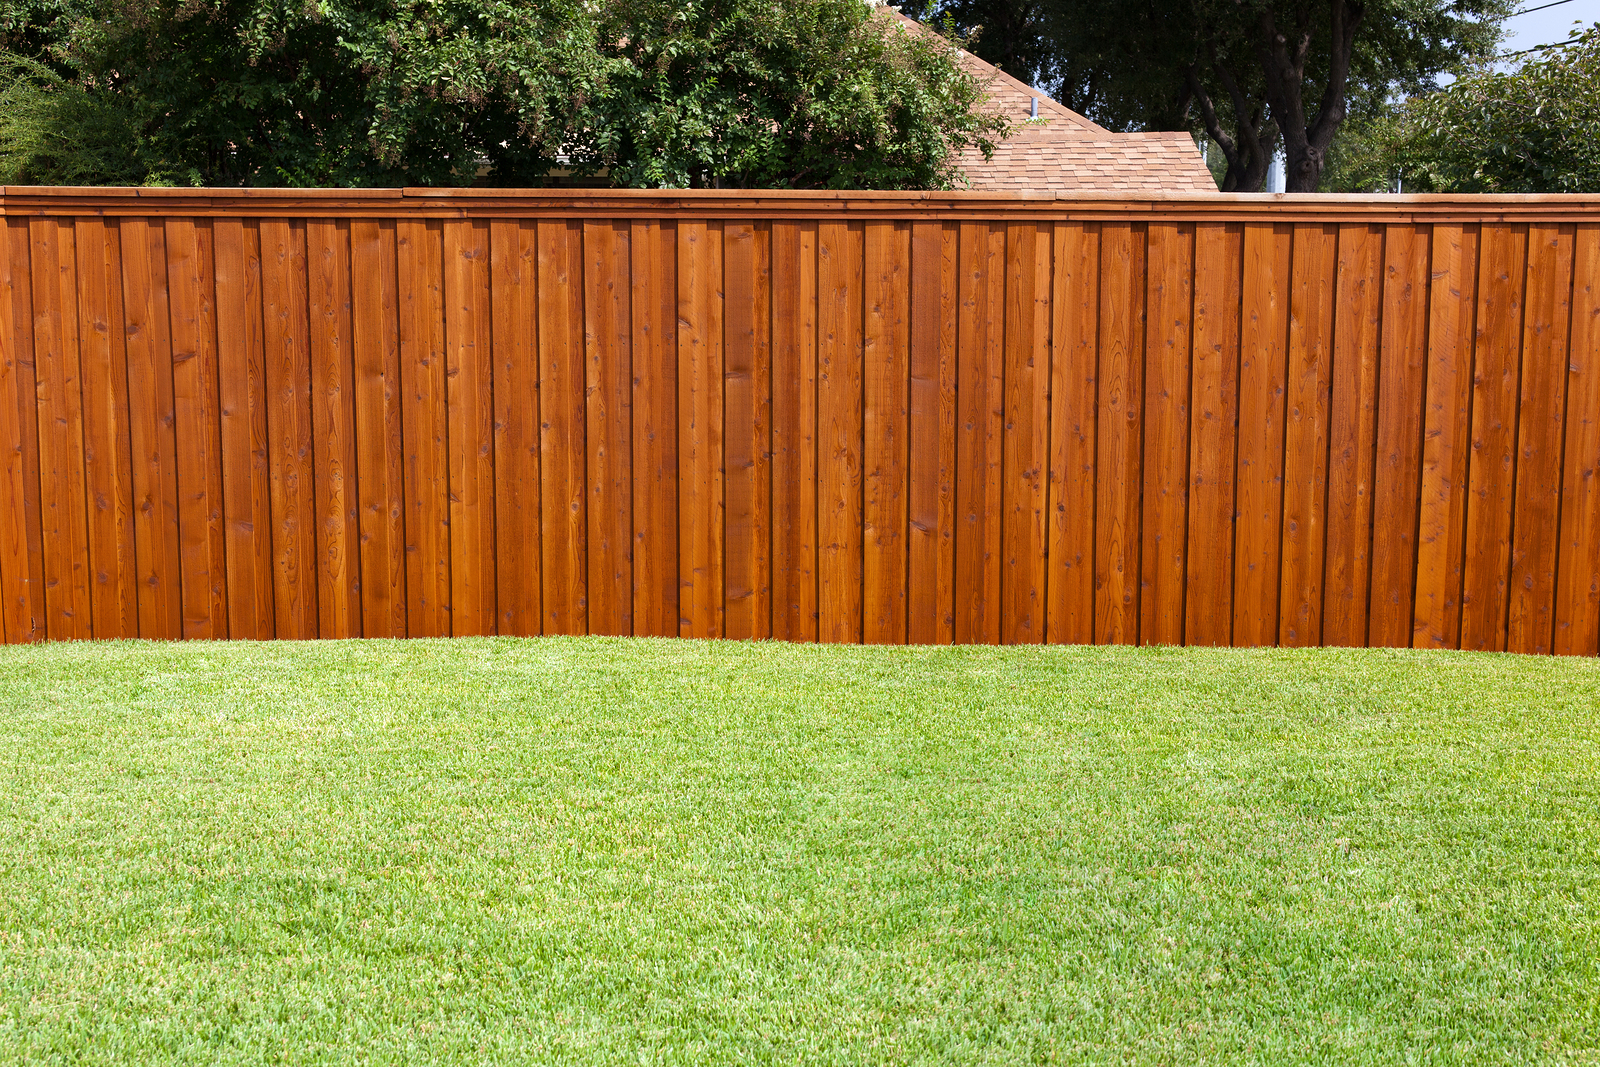 6 Reasons To Install A Fence Around Your Backyard Themocracy throughout Fencing For Backyard